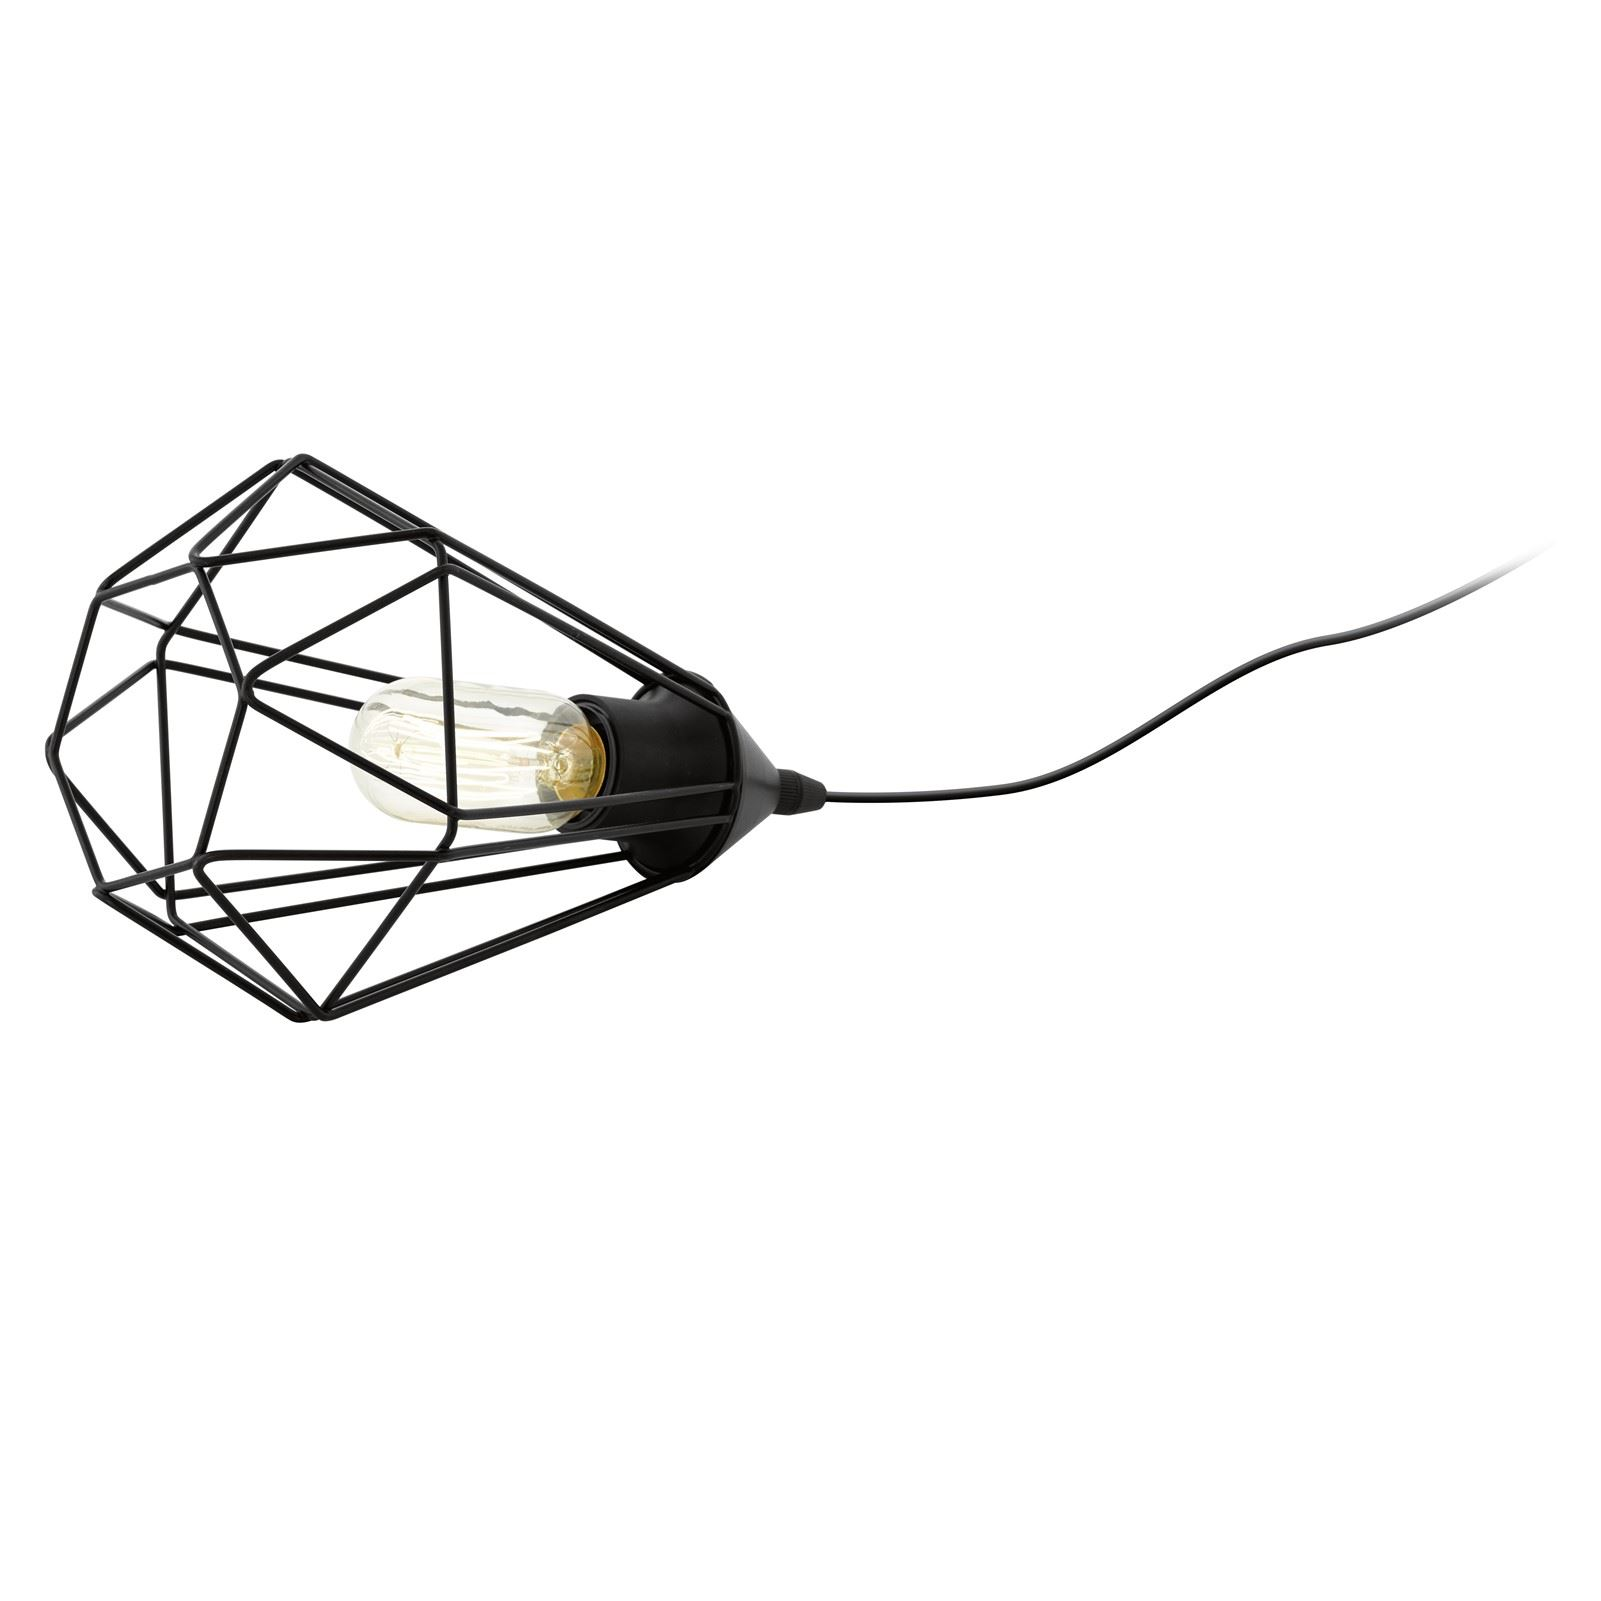 Table Lamp Light Tarbes E27 With Cable Switch Matt Black